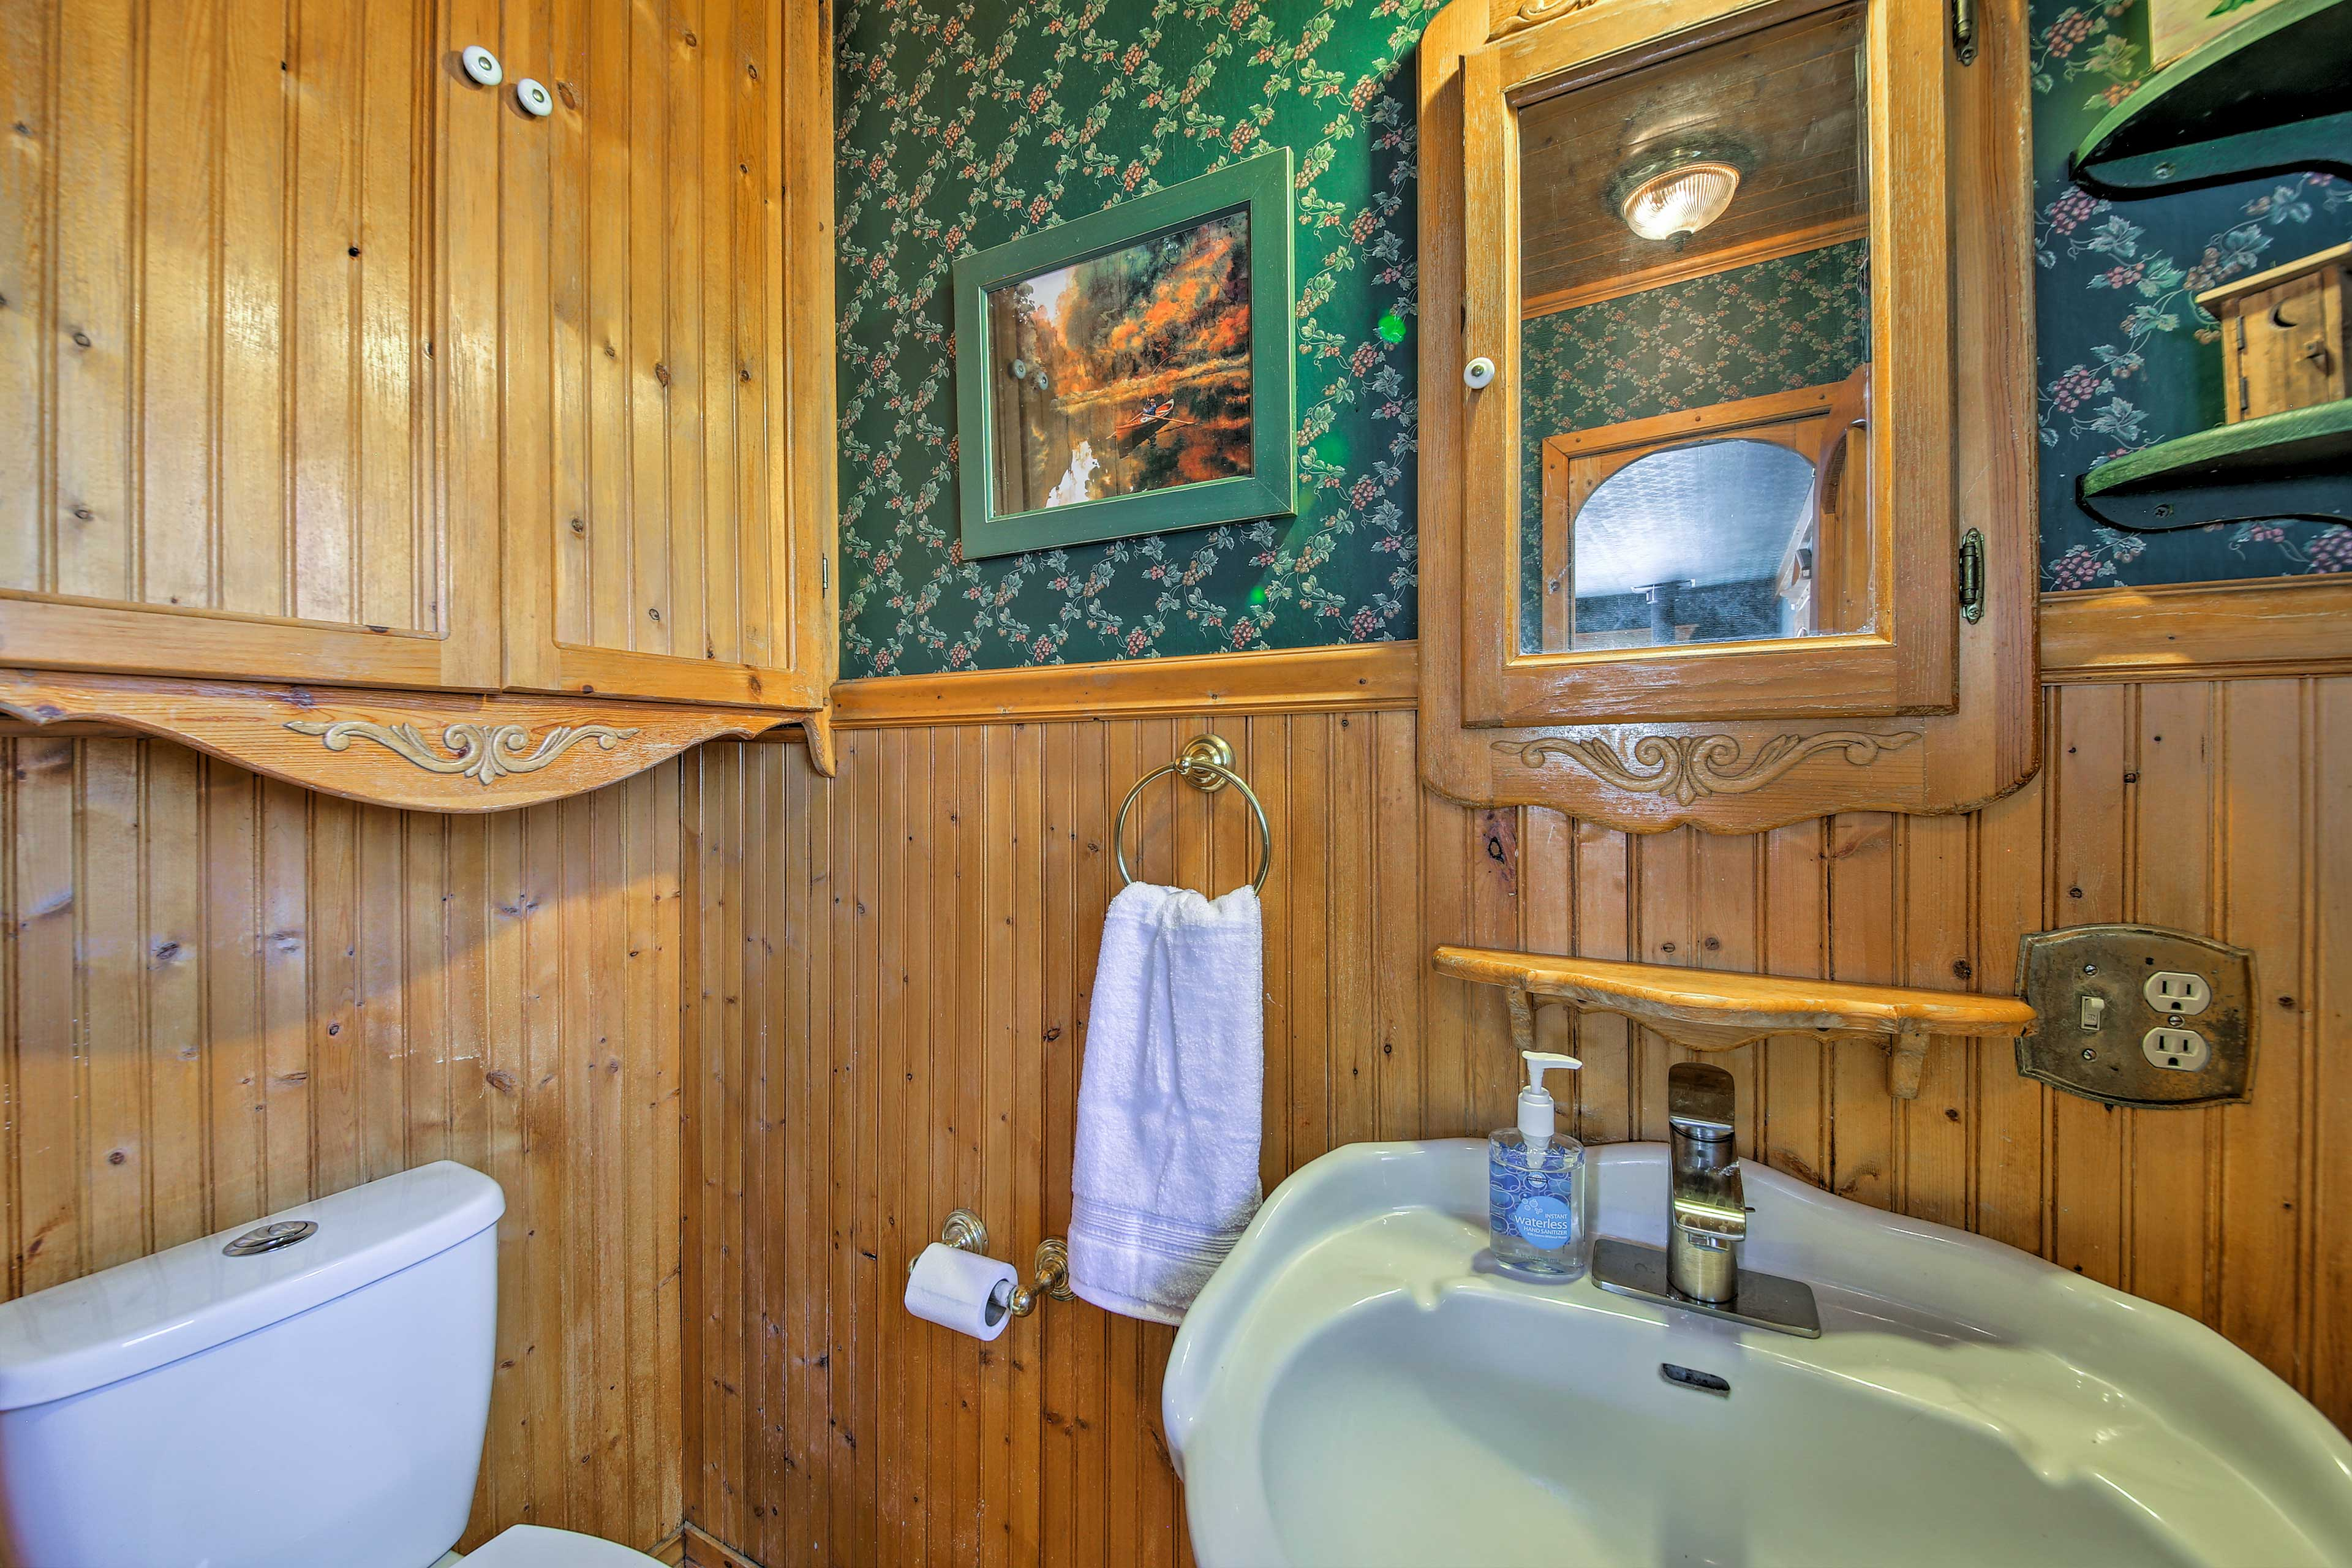 This bathroom is located just off of the living room.